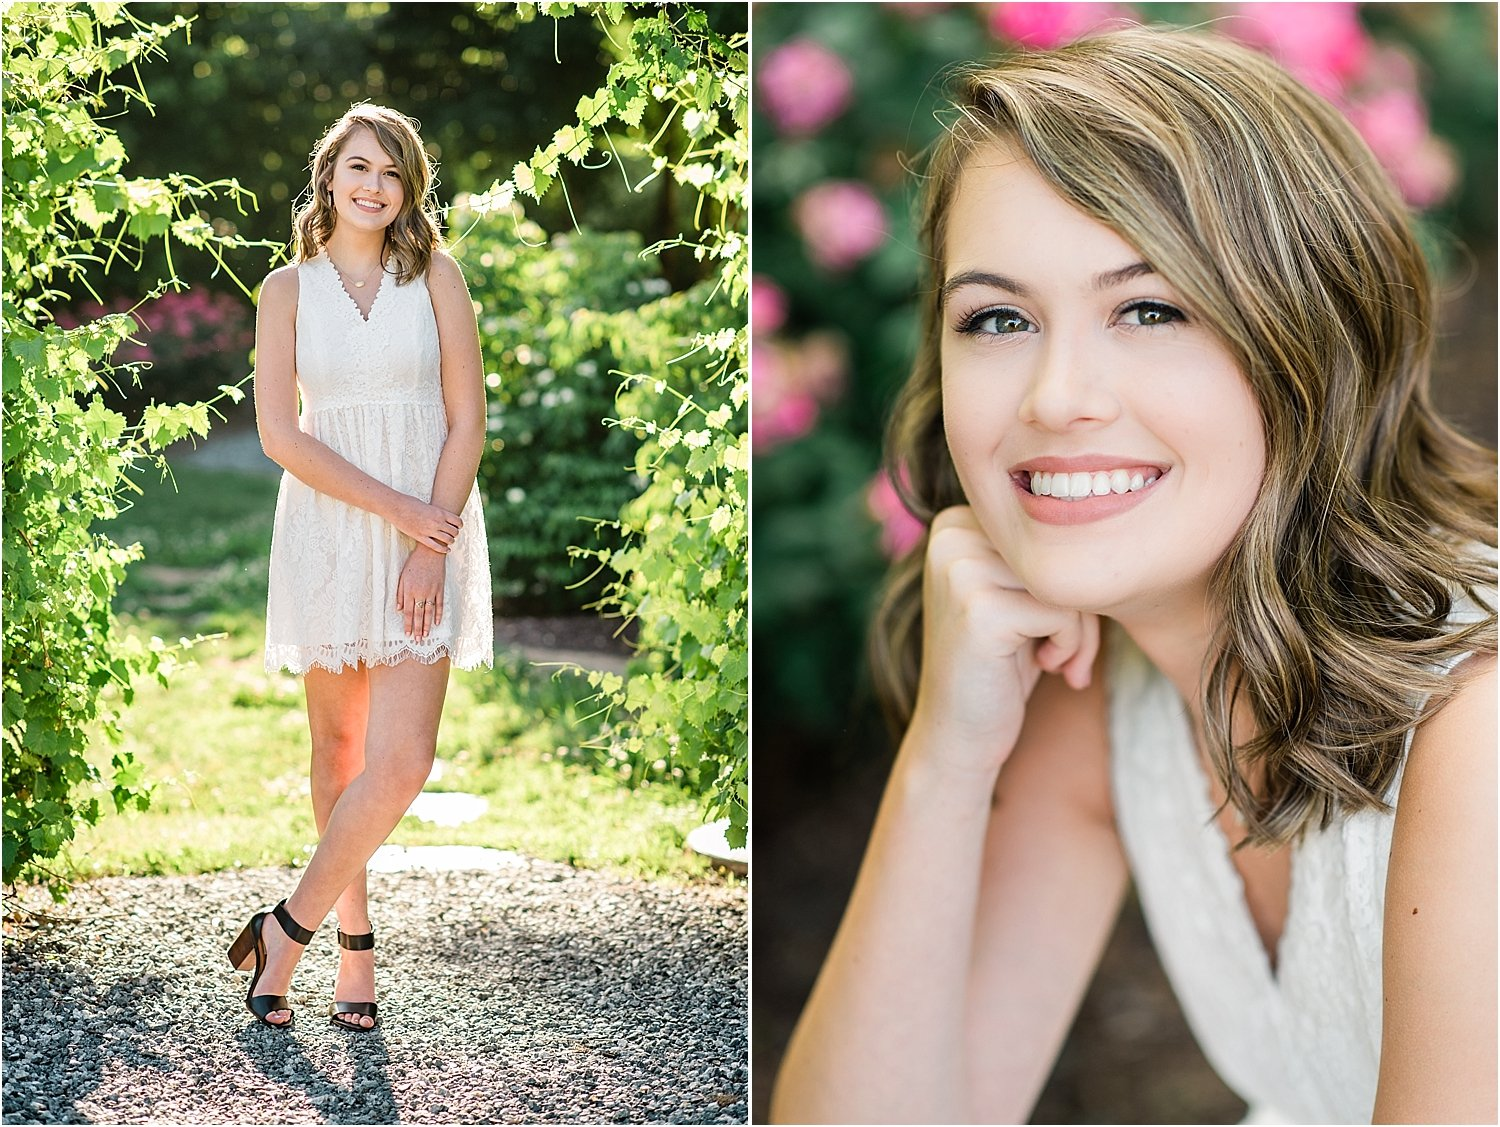 Beautiful Spring senior portraits in Historic Glencoe Mill Village.